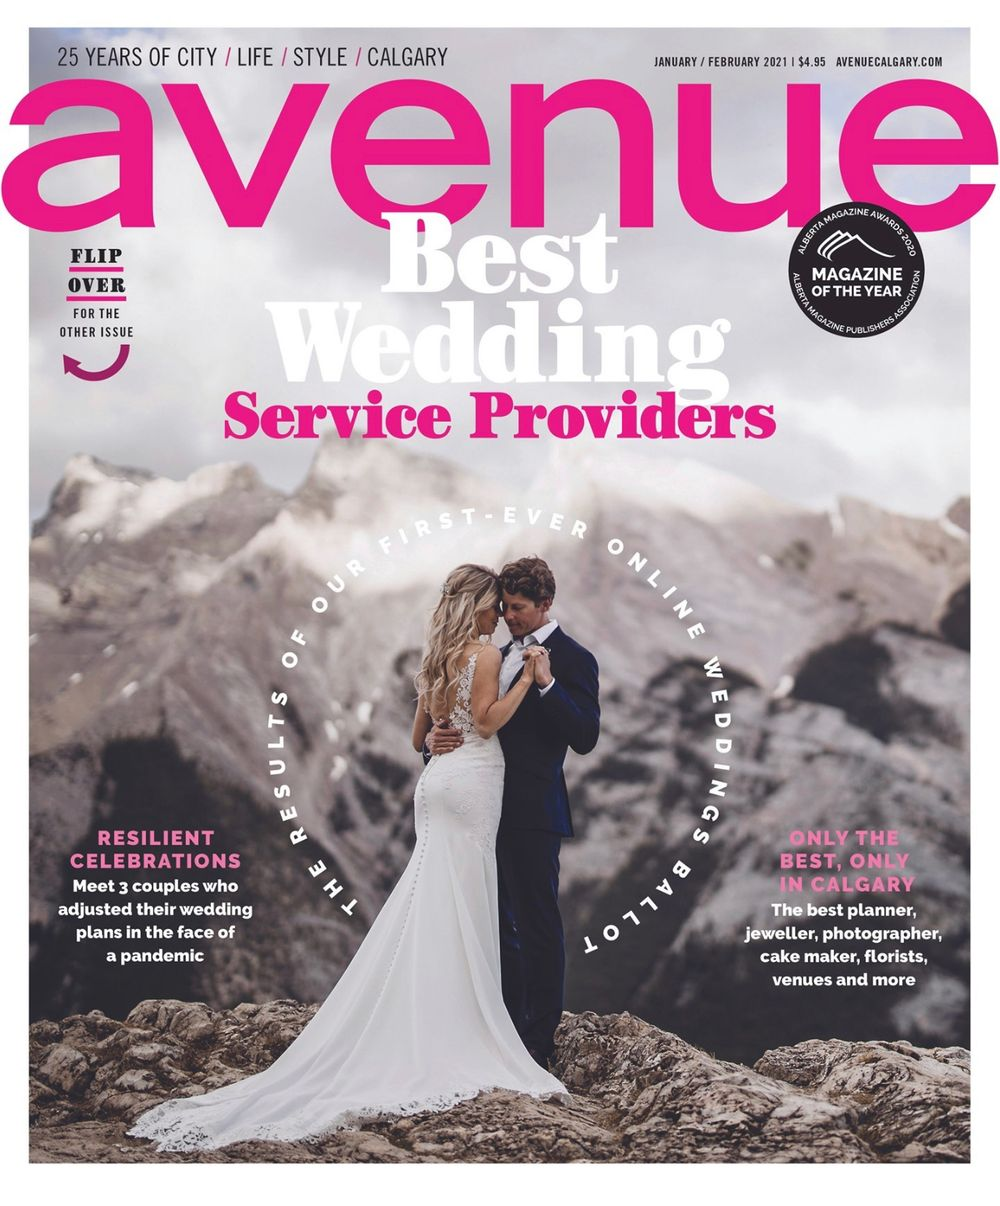 Avenue Magazine Best Wedding Photographer